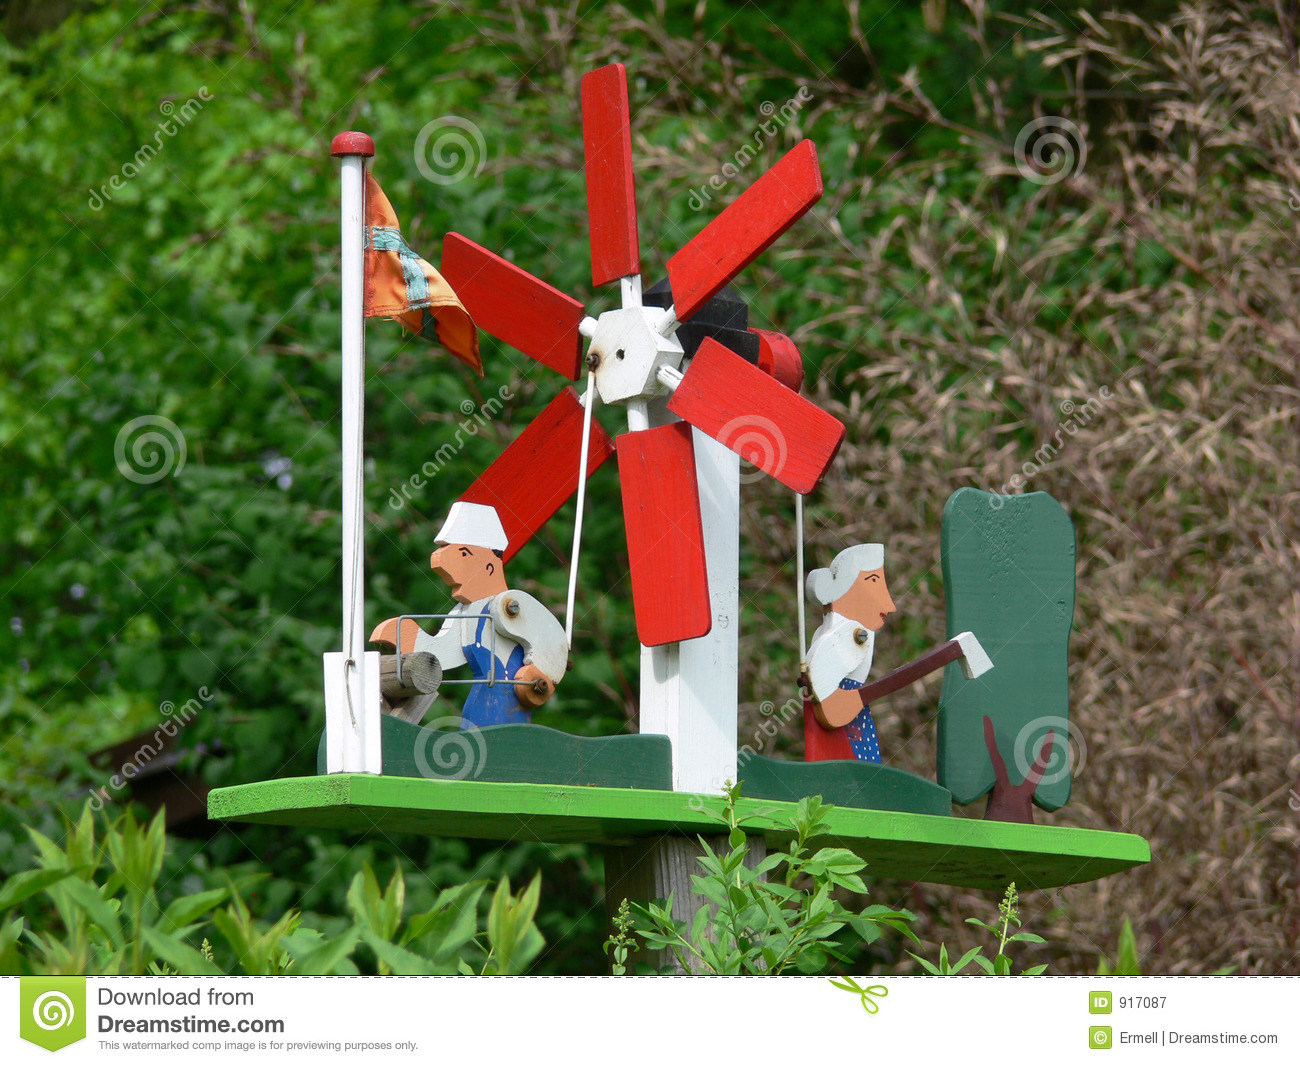 Windmill Royalty Free Stock Photography - Image: 917087